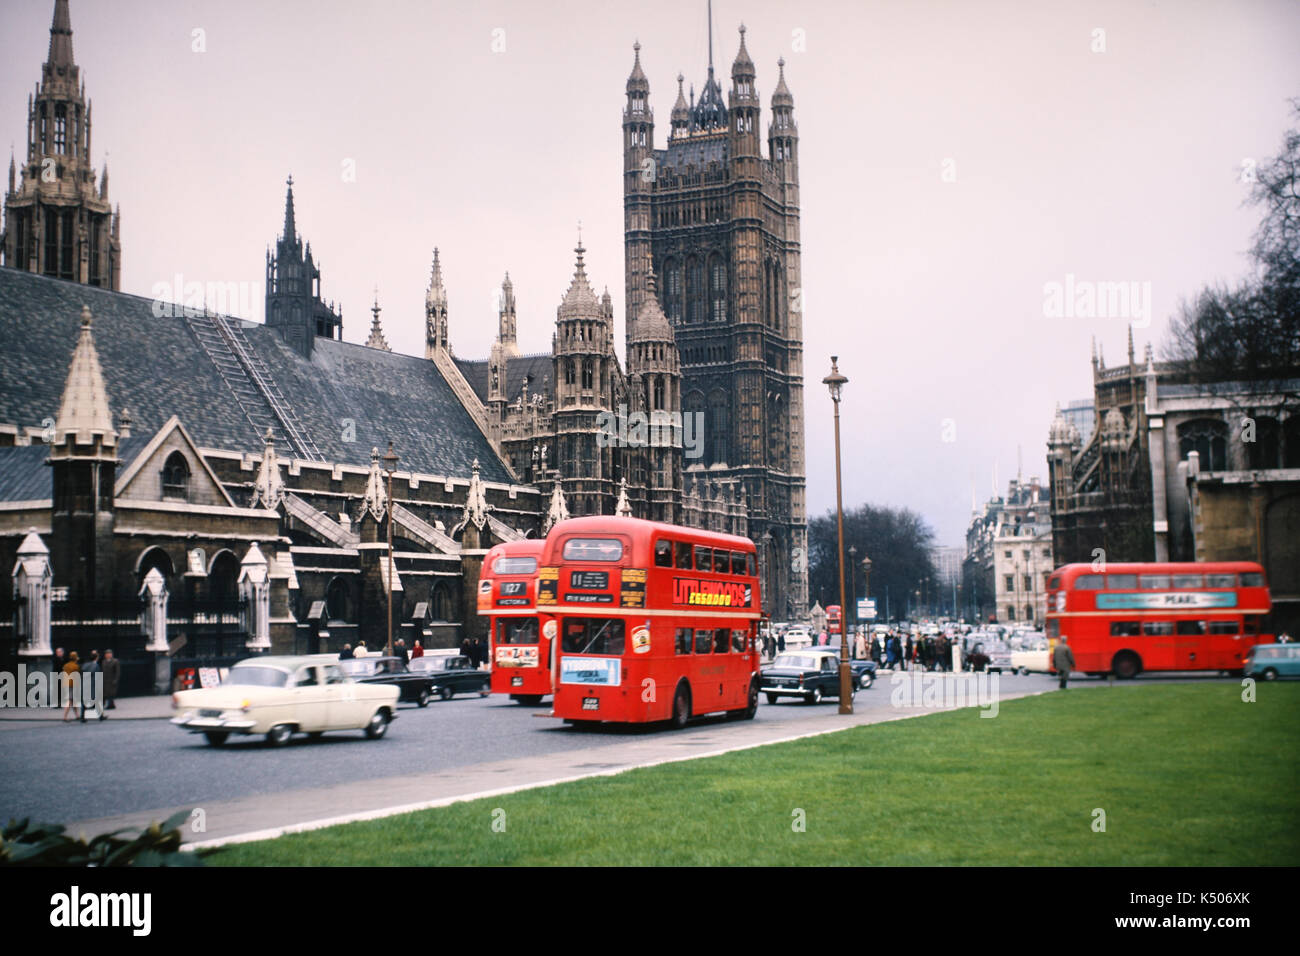 Vintage photo from 1967 of the Palace of Westminster - Stock Image